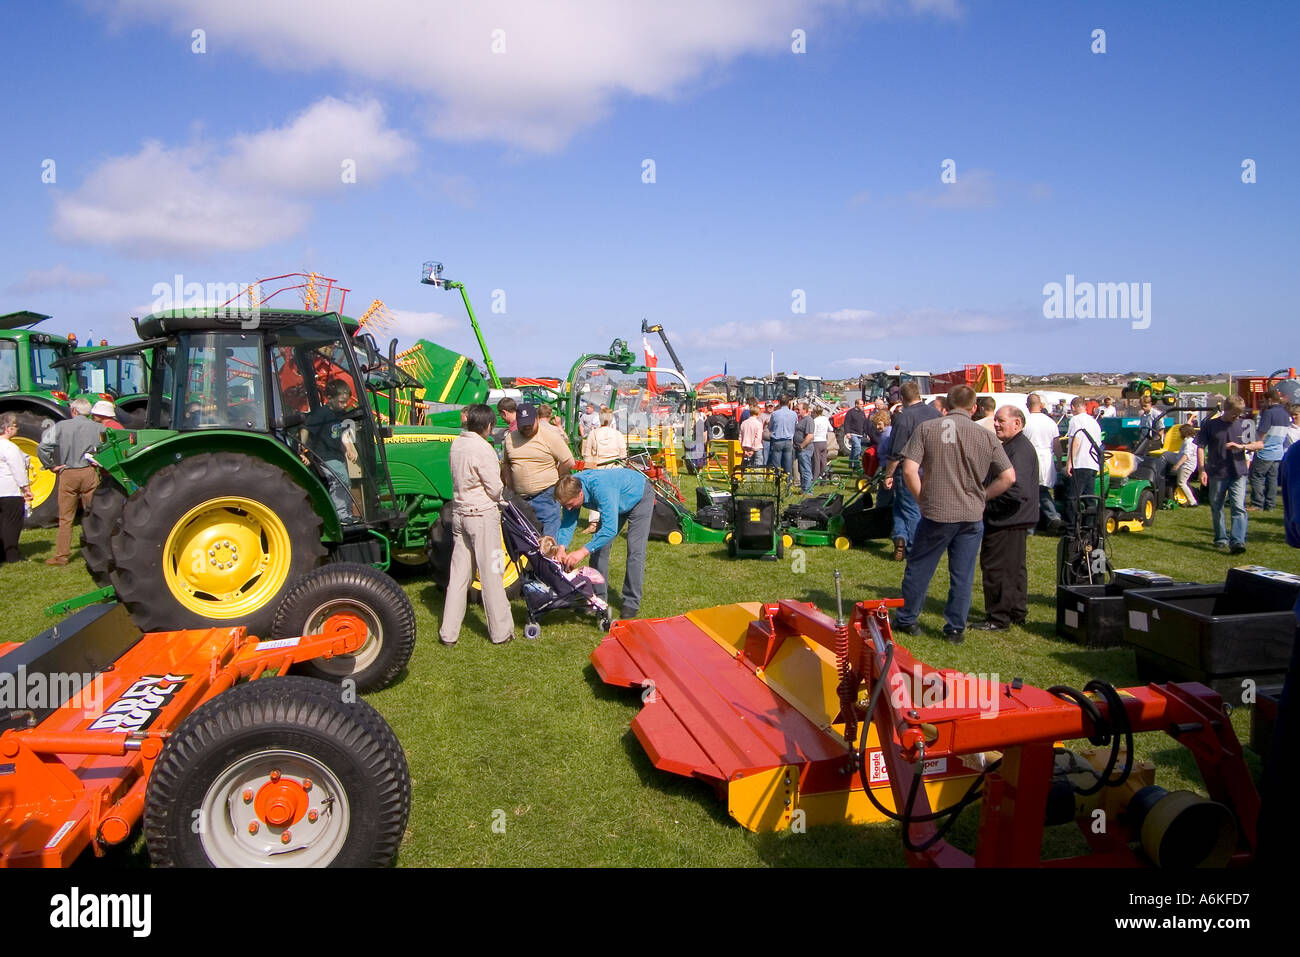 dh County Show KIRKWALL ORKNEY John Deere tractors machines at show ground display farming equipment uk Stock Photo